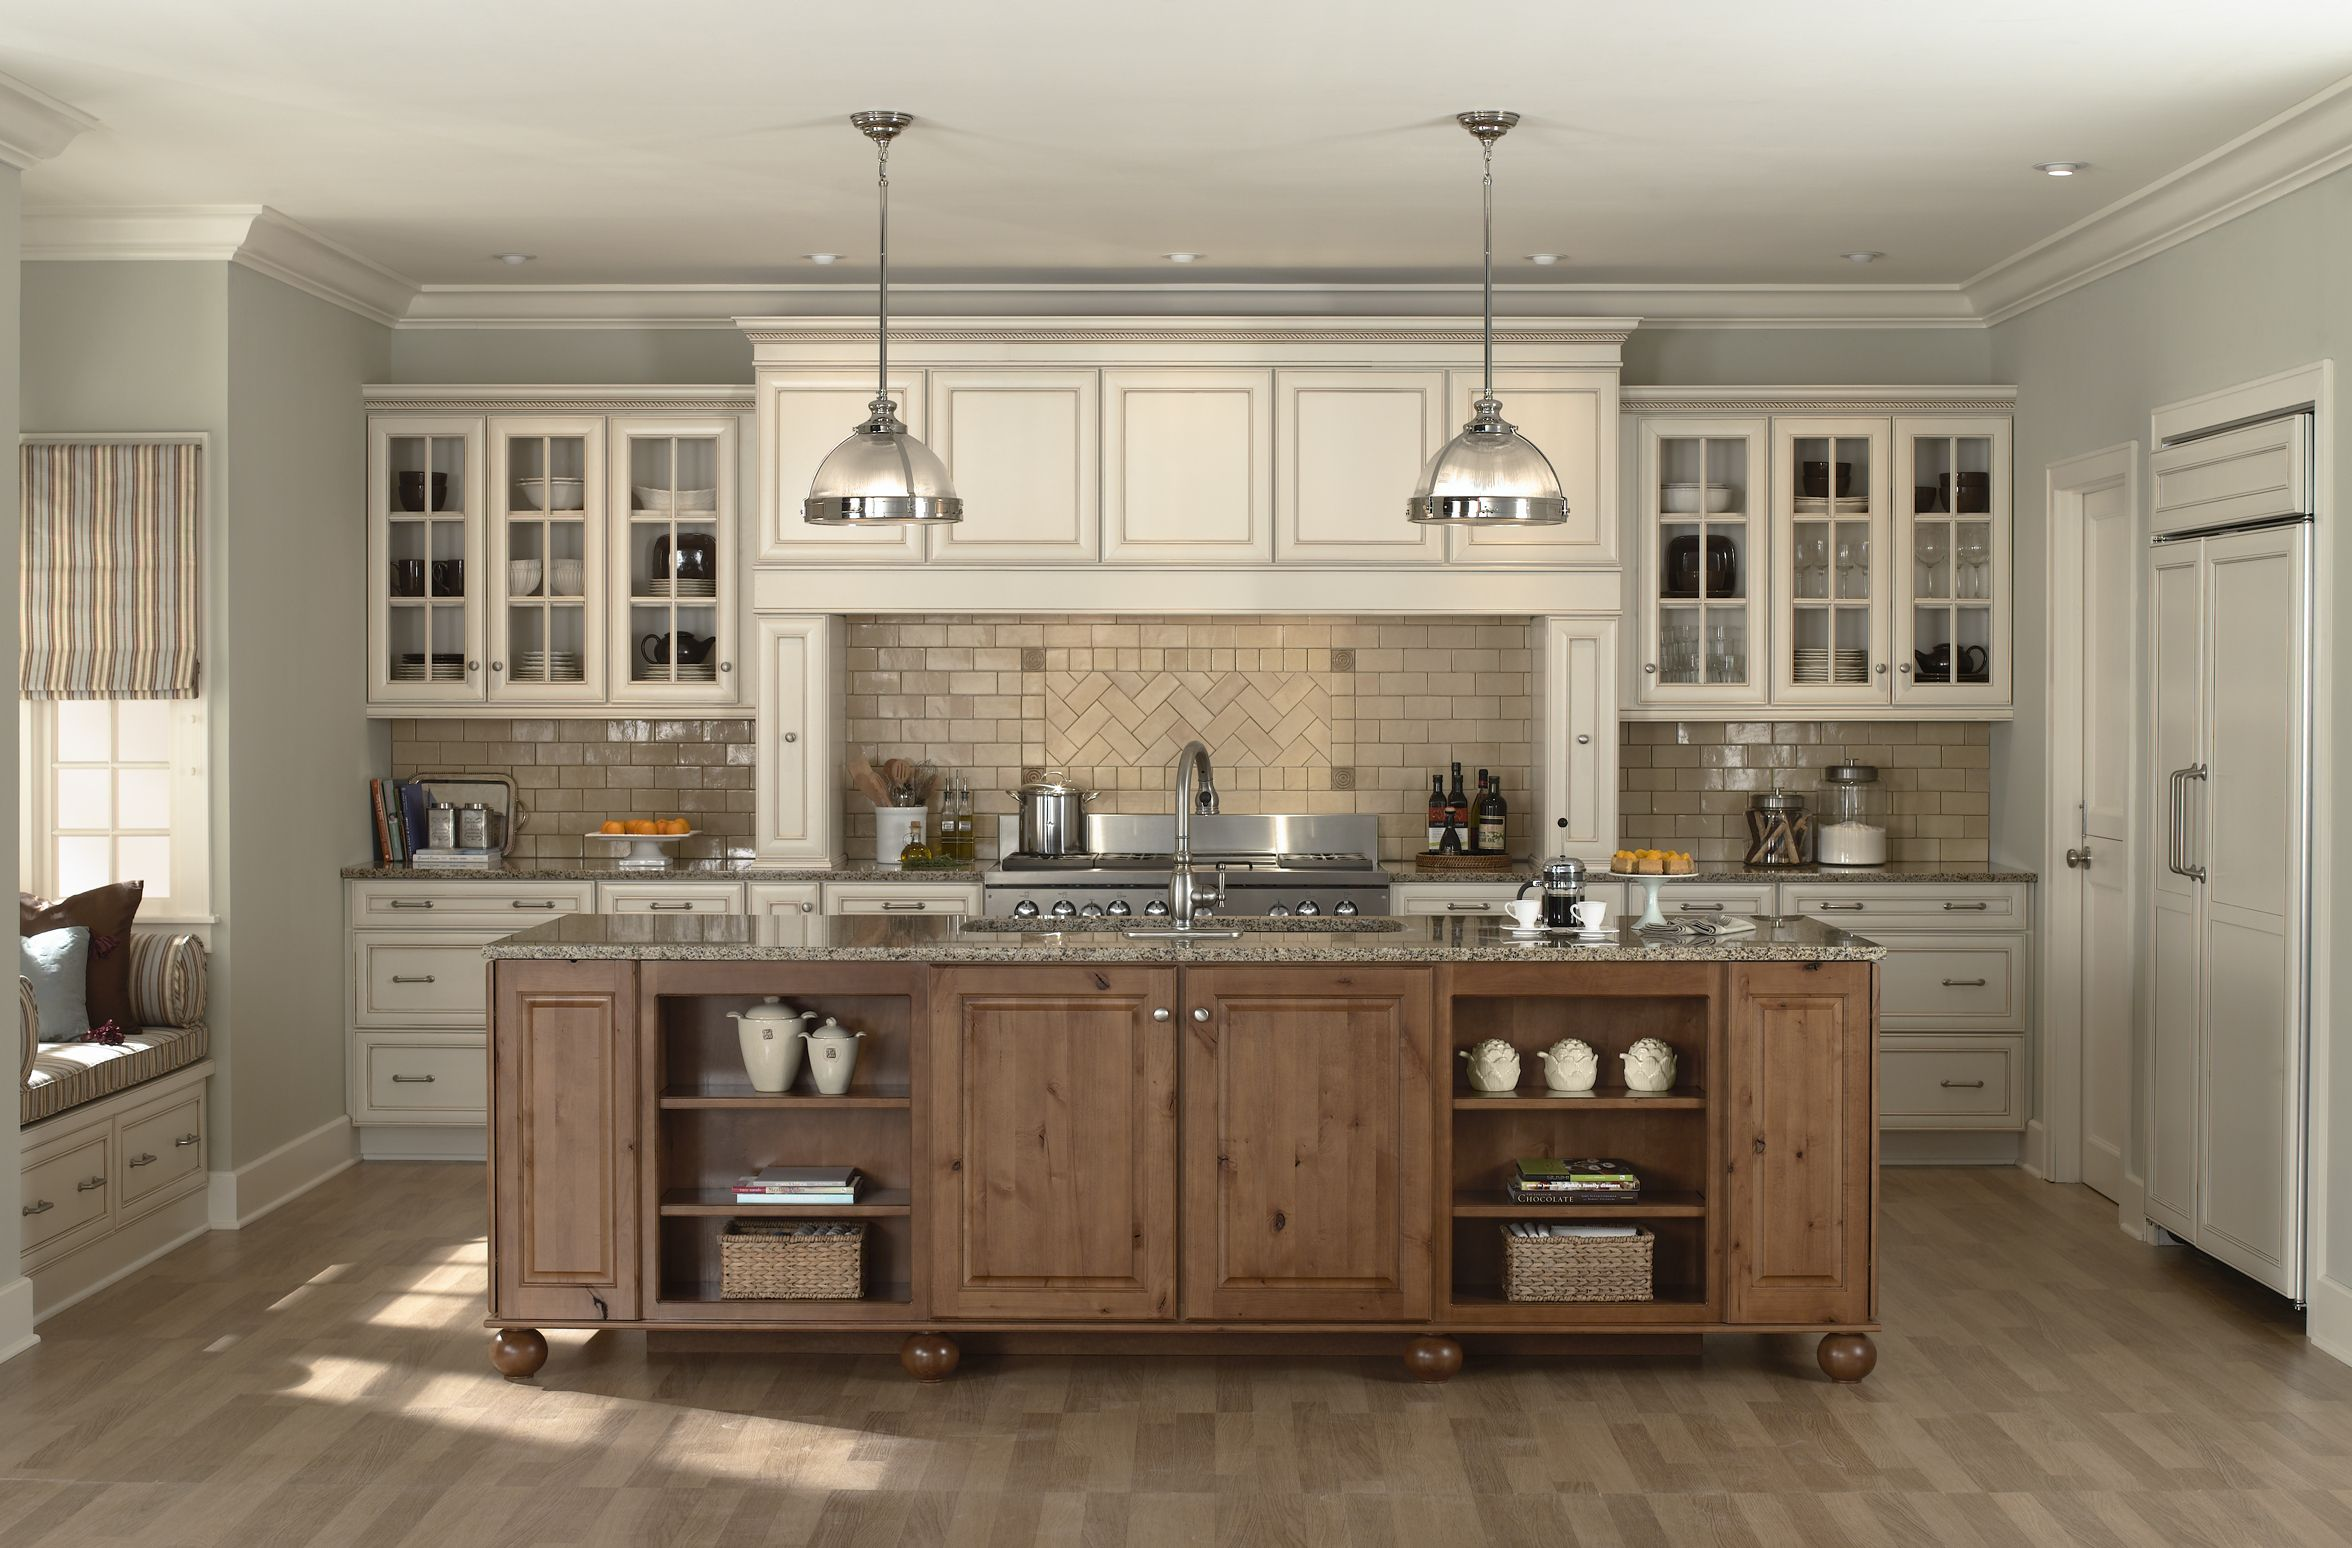 Farmhouse Kitchen Colors With White Cabinets